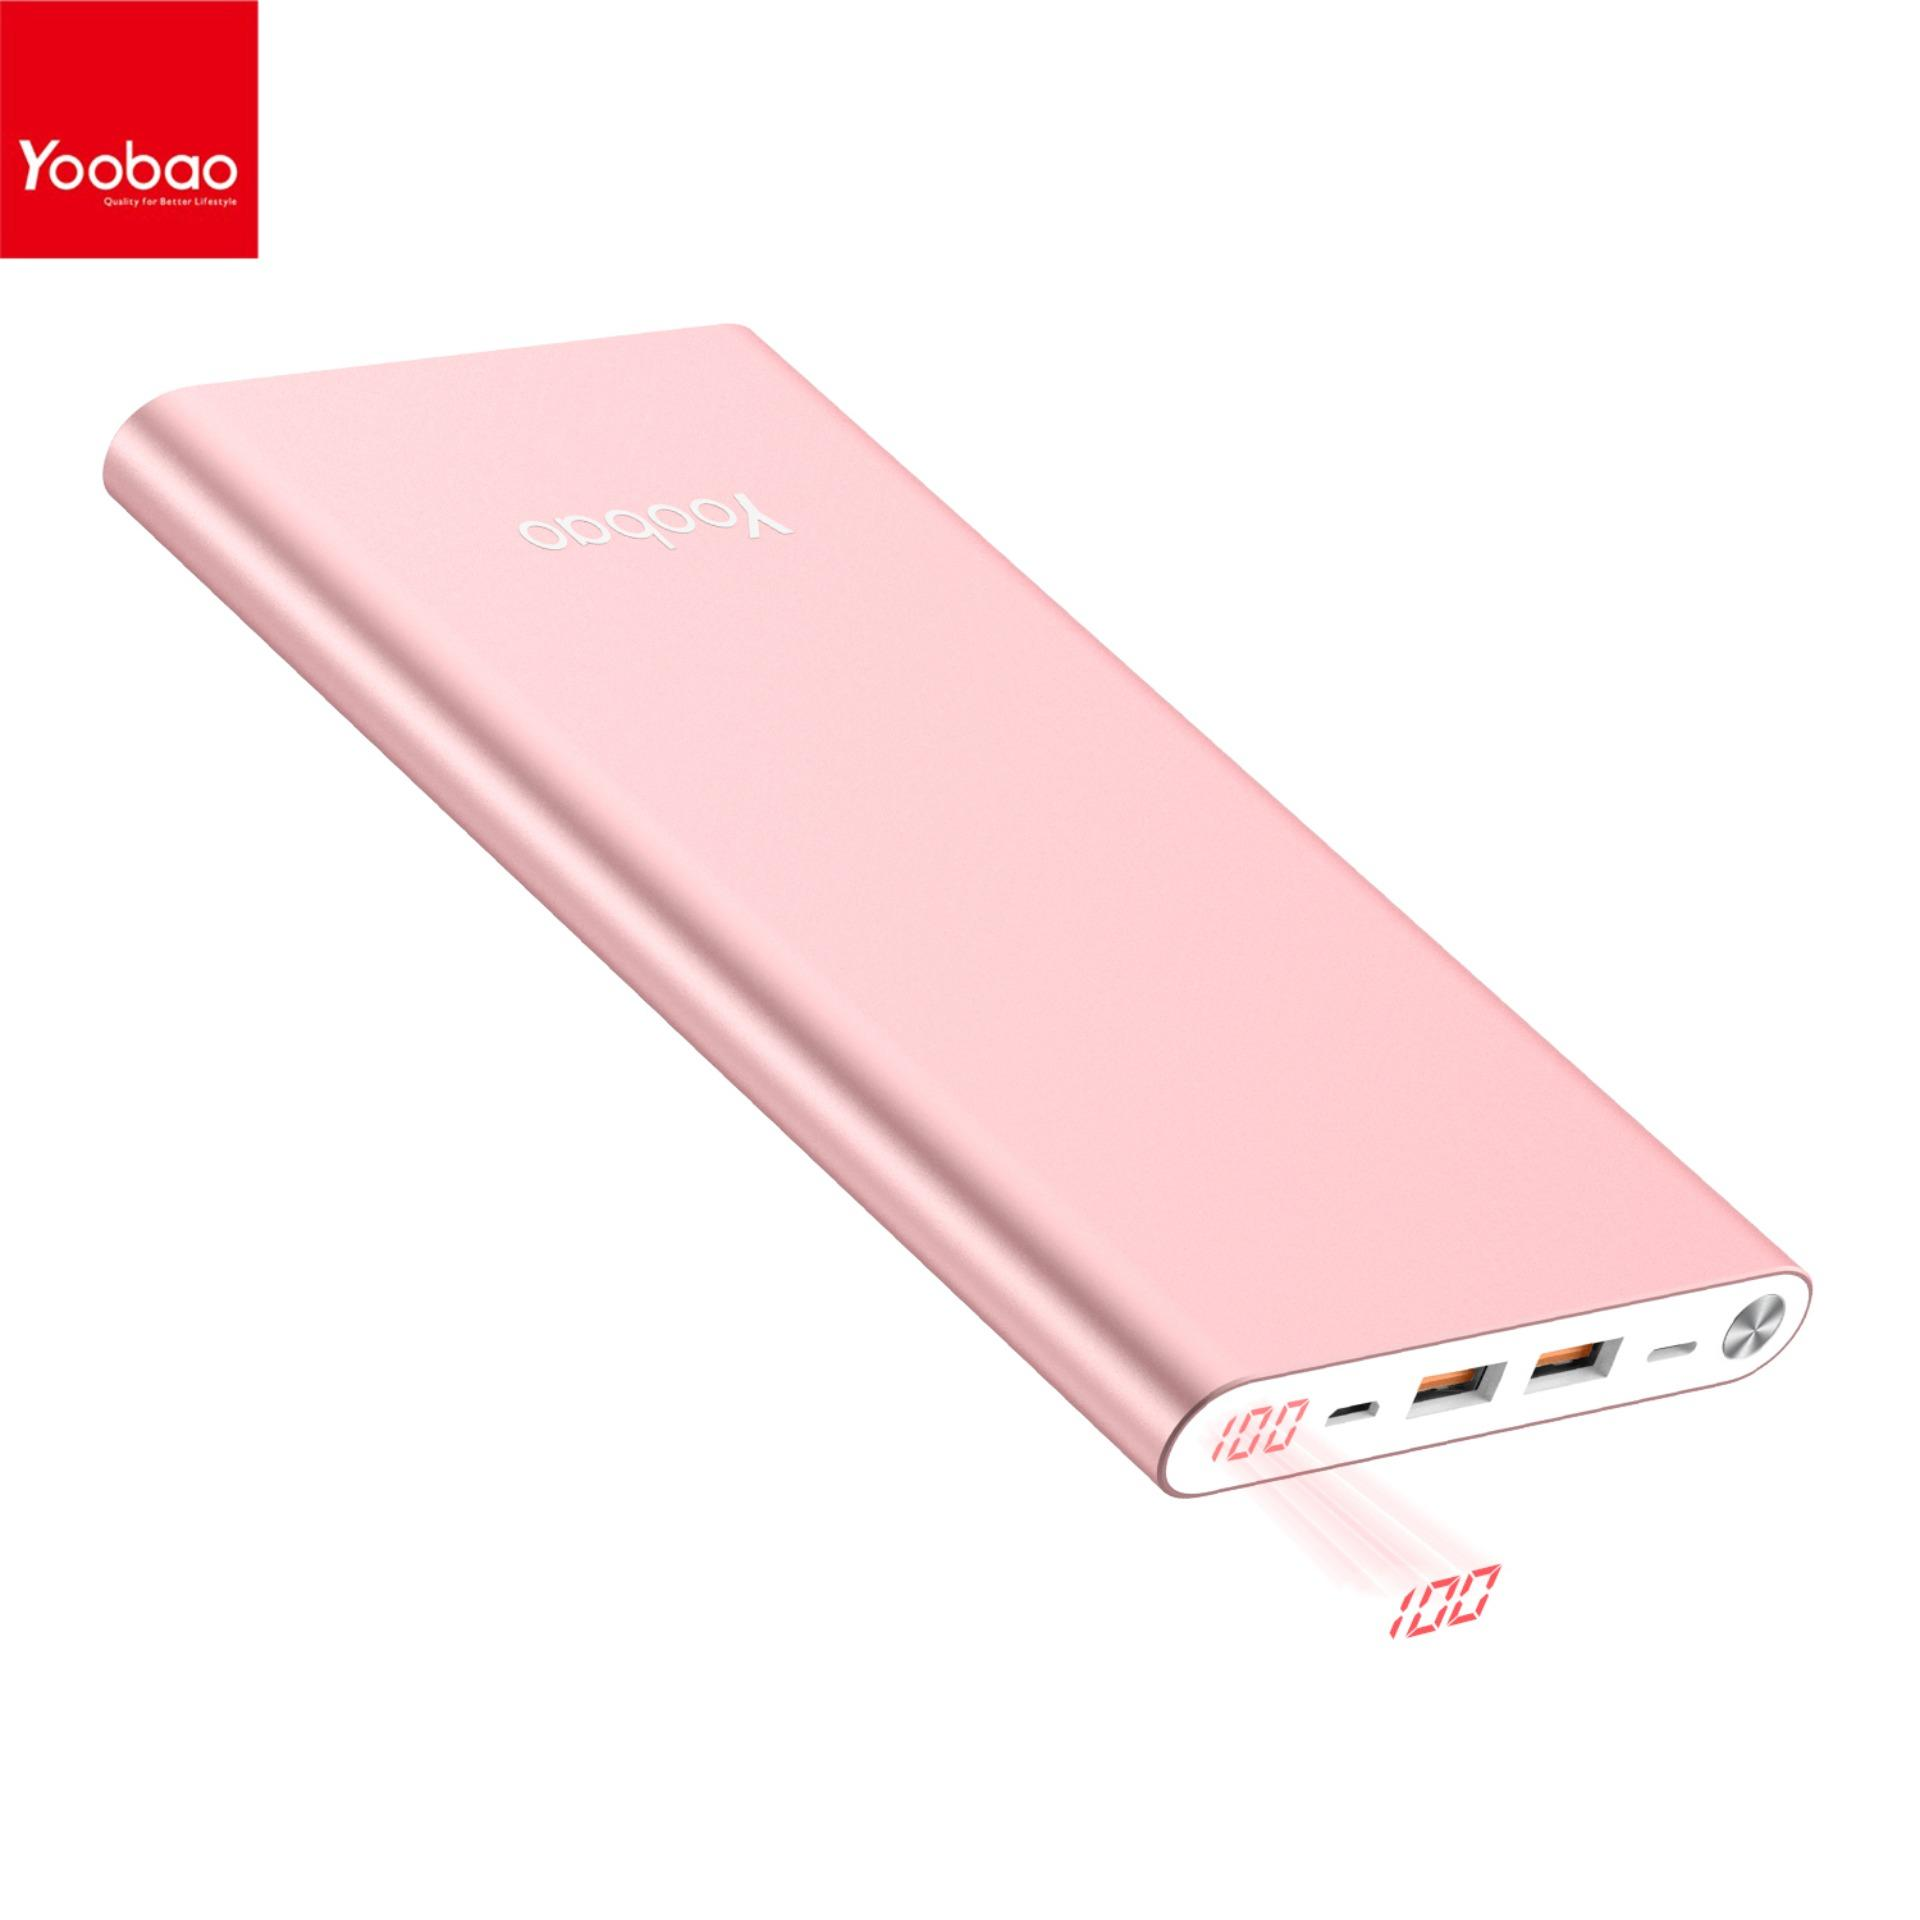 YOOBAO A2 Ultra Thin mAh Power Bank Rose Gold